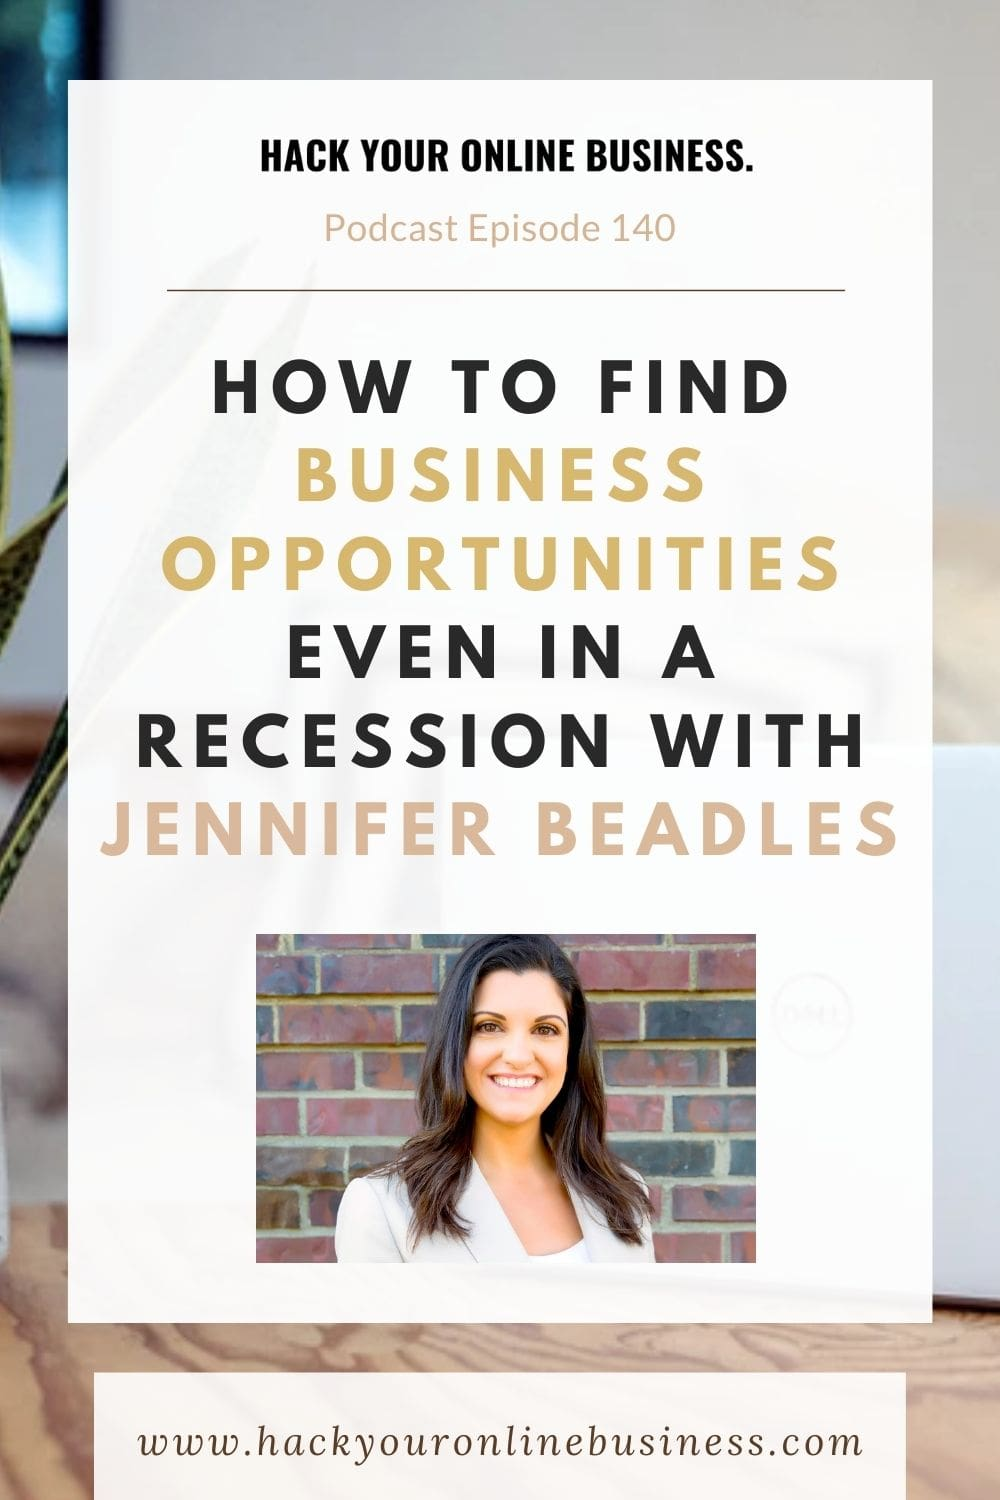 How To Find Business Opportunities Even In A Recession With Jennifer Beadles